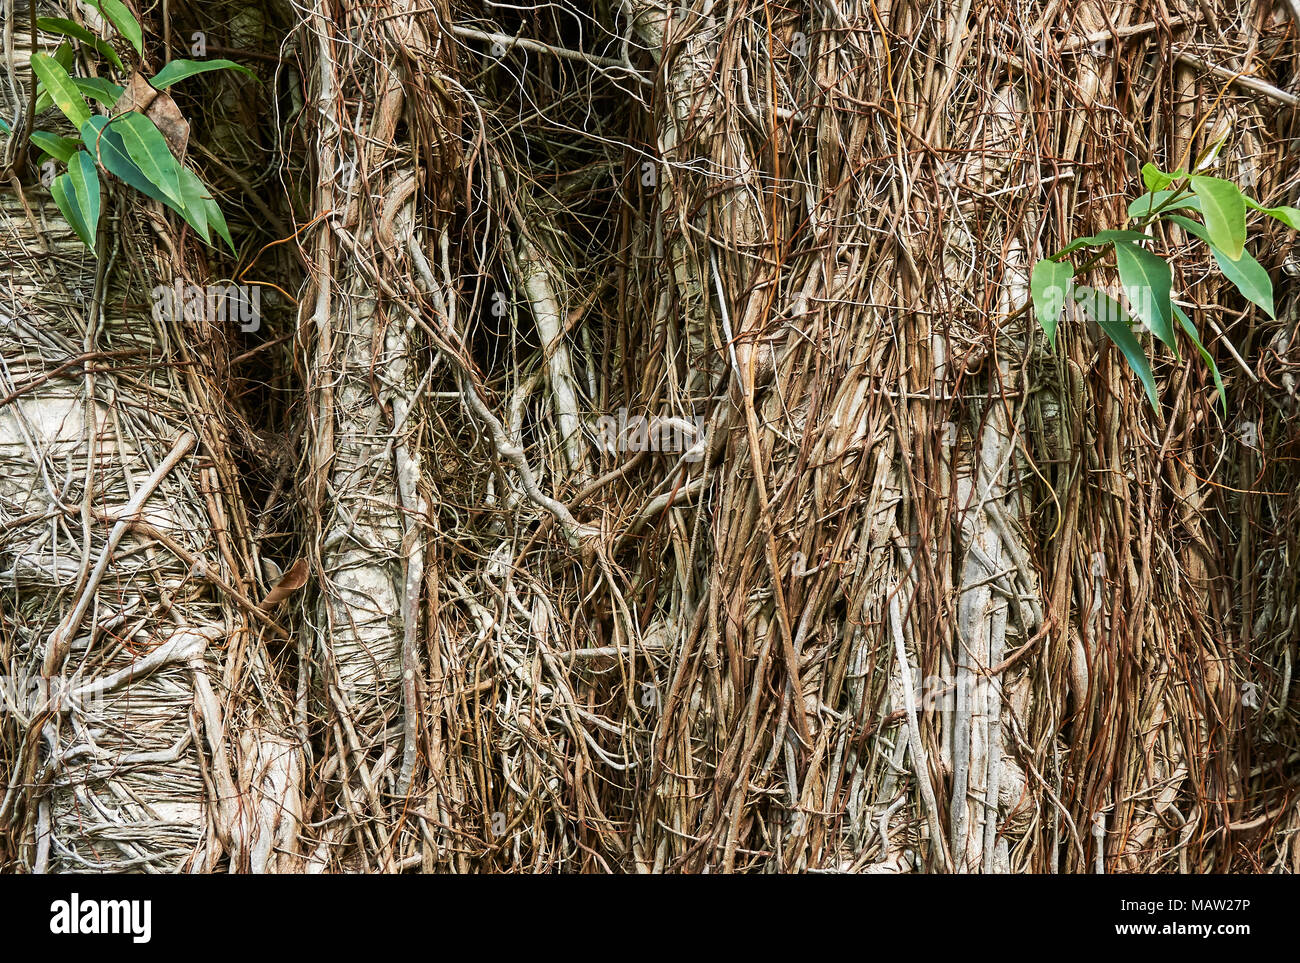 The confused tangle of Bamboo roots and shoots on Tree's near by at the Tenerife Botanical Gardens in the Canary Islands. - Stock Image